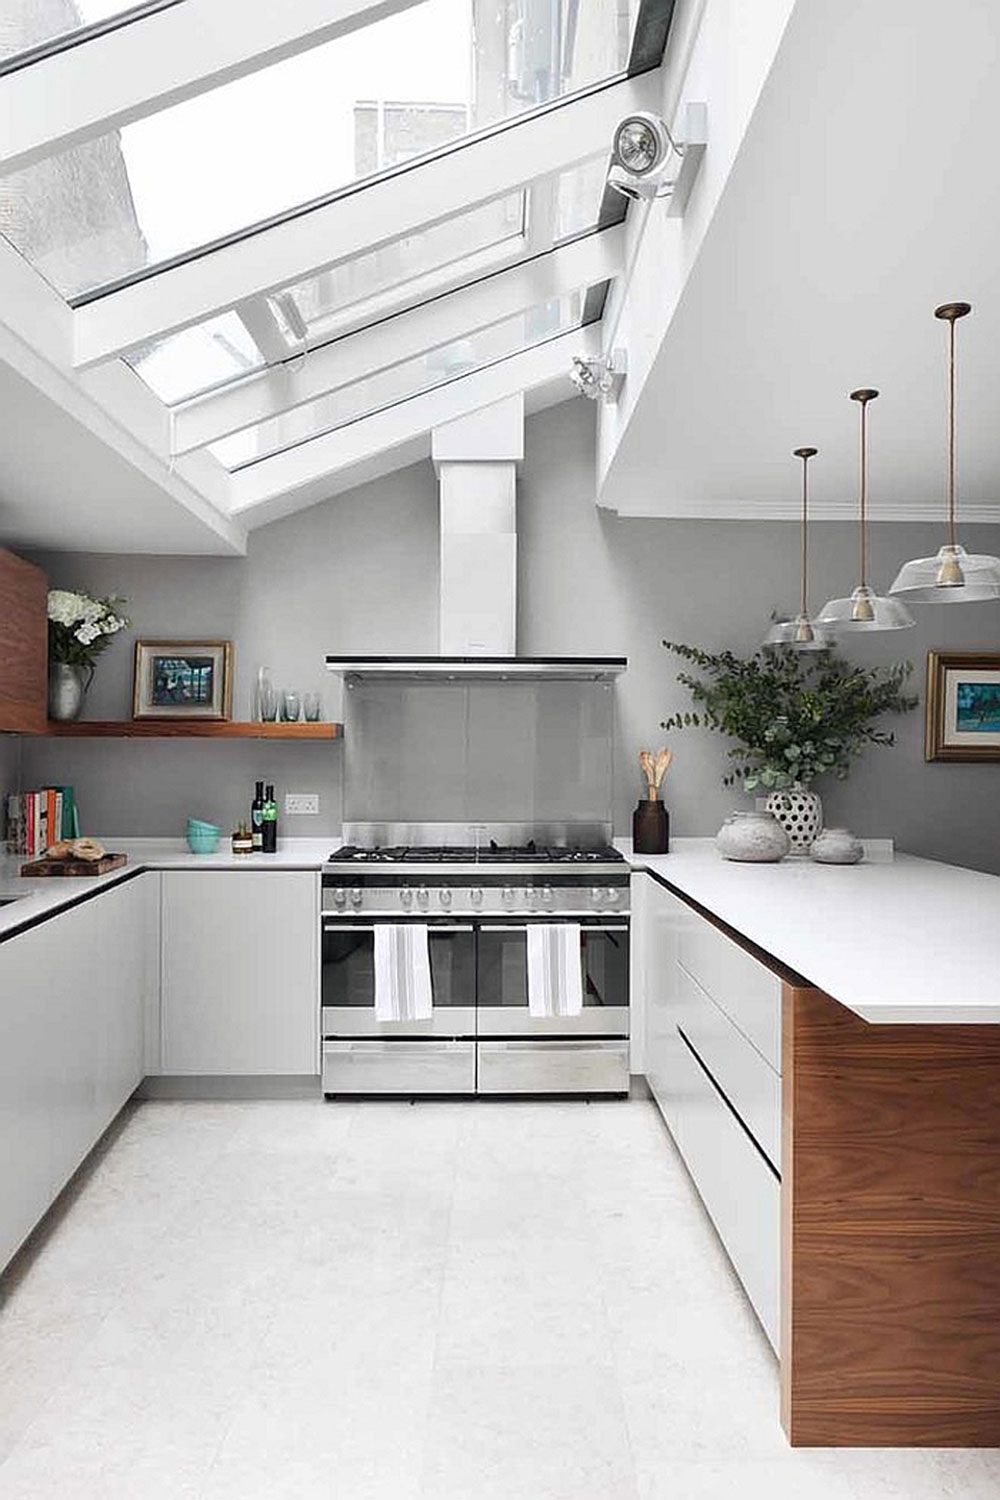 Lovely Kitchens With Skylights For More Natural Light 6 Kitchens Part 10